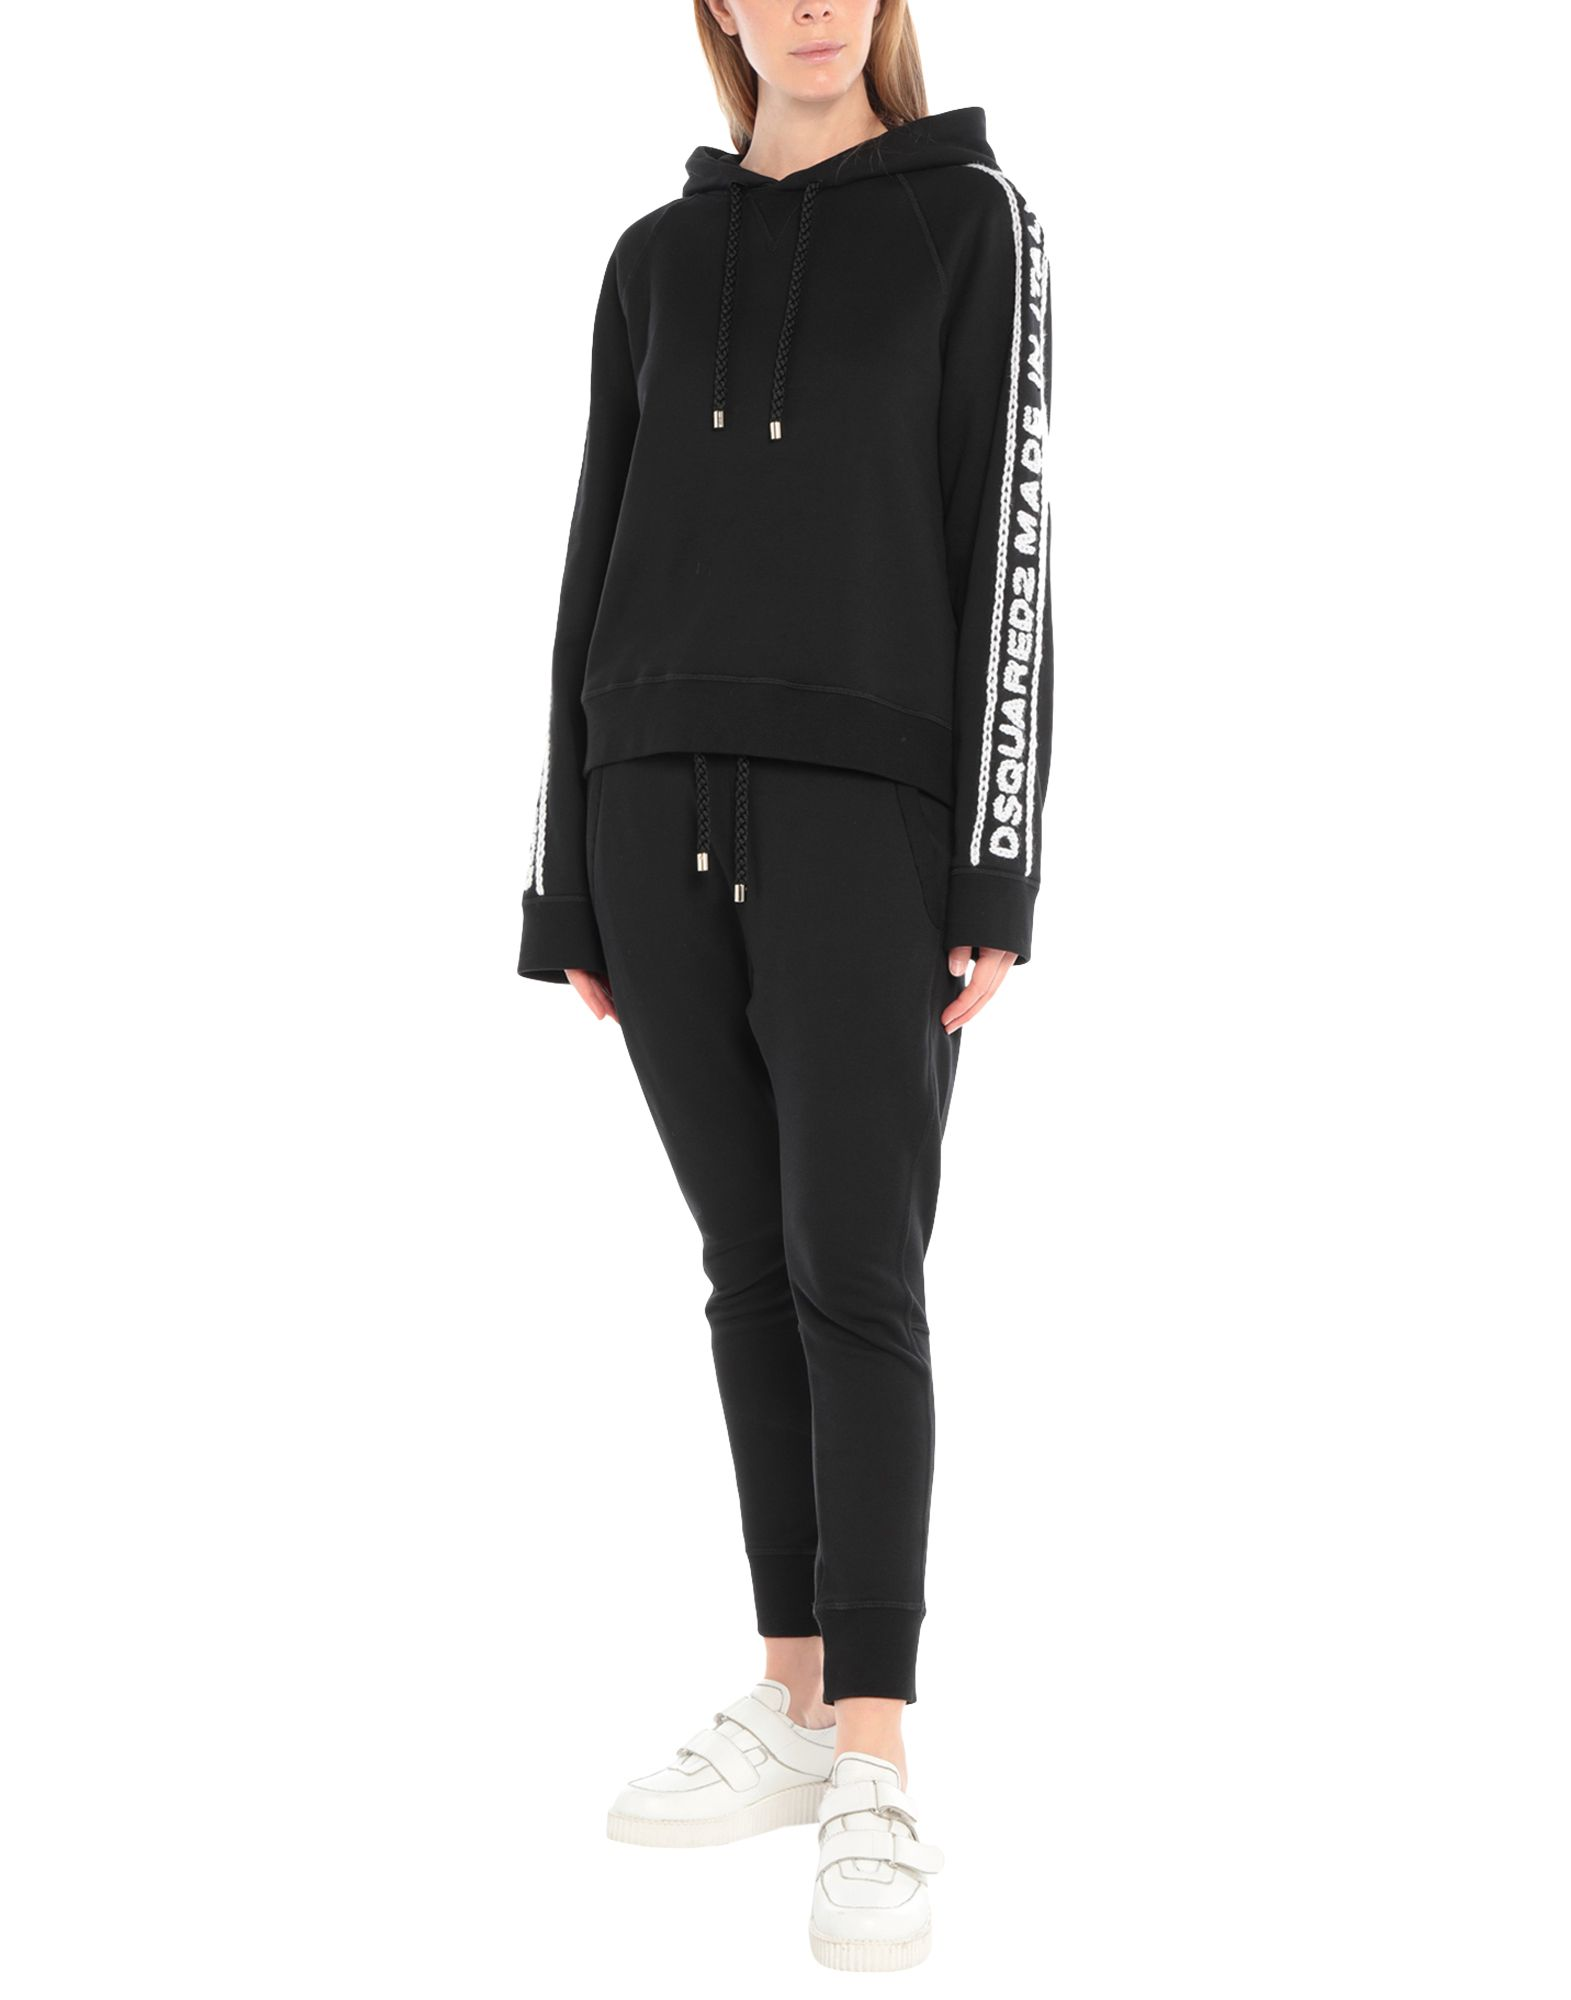 DSQUARED2 Sweatsuits. sweatshirt fleece, beads, embroidered detailing, solid color, hooded collar, no pockets, long sleeves, fleece lining. 100% Cotton, Elastane, Wool, Glass